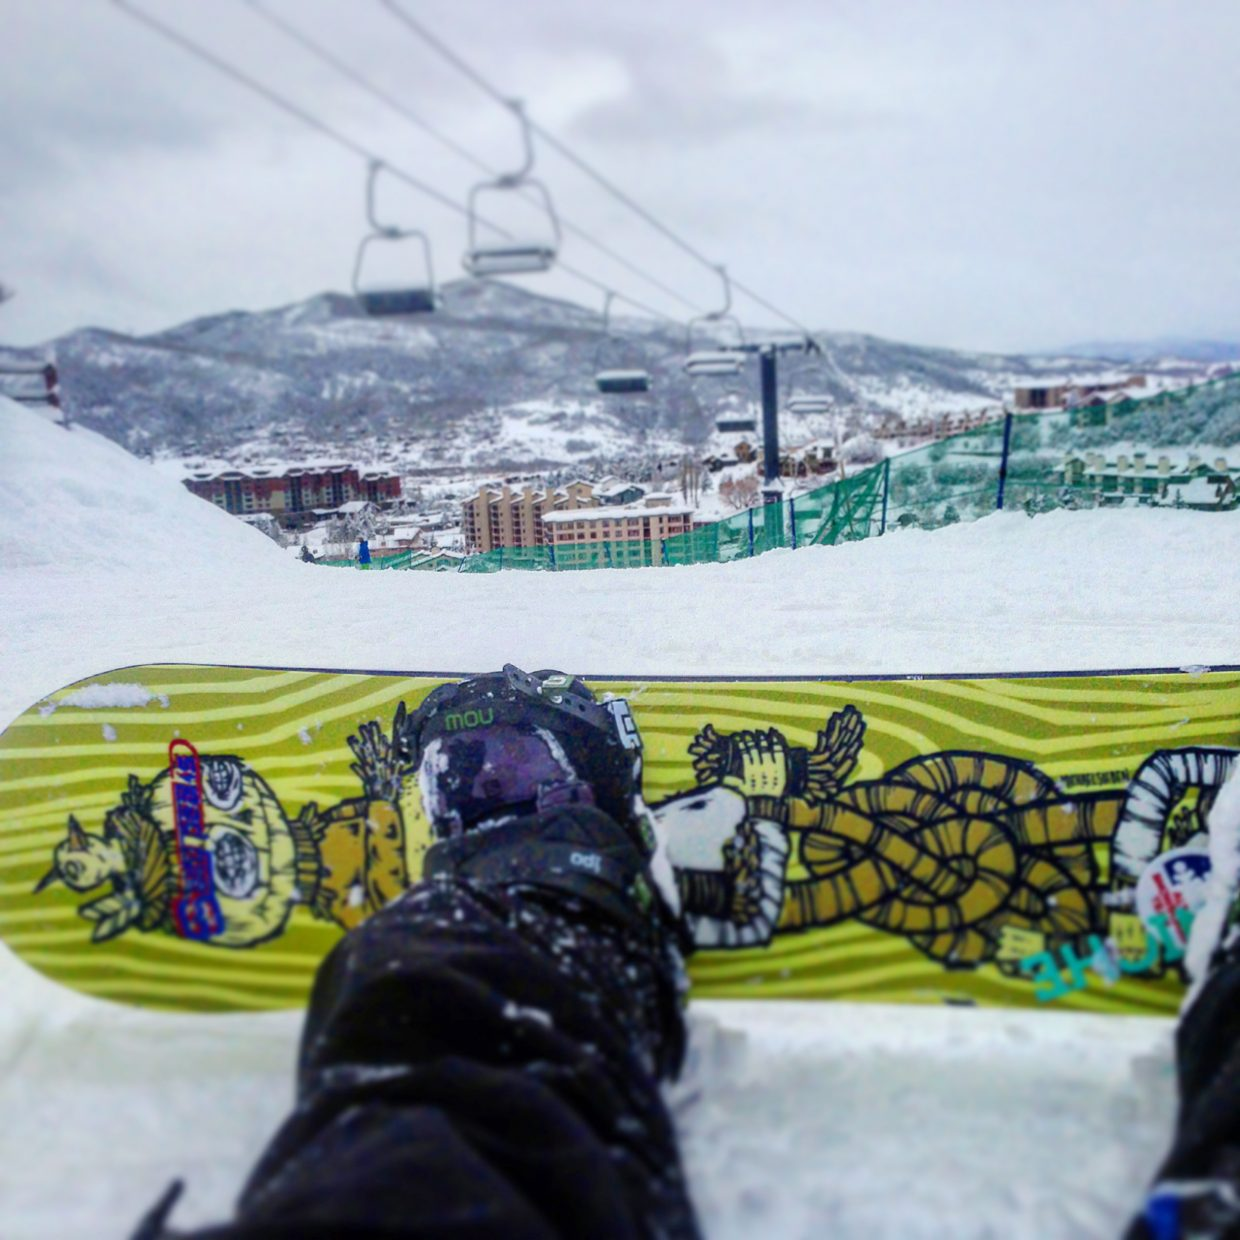 Steamboat Today reporter and photographer Austin Colbert took this picture earlier this week for his Instagram account while practicing at Steamboat Ski Area. It's been weeks in the making, but Colbert, new to snowboarding, is finally on the verge of mastering the bunny slopes.